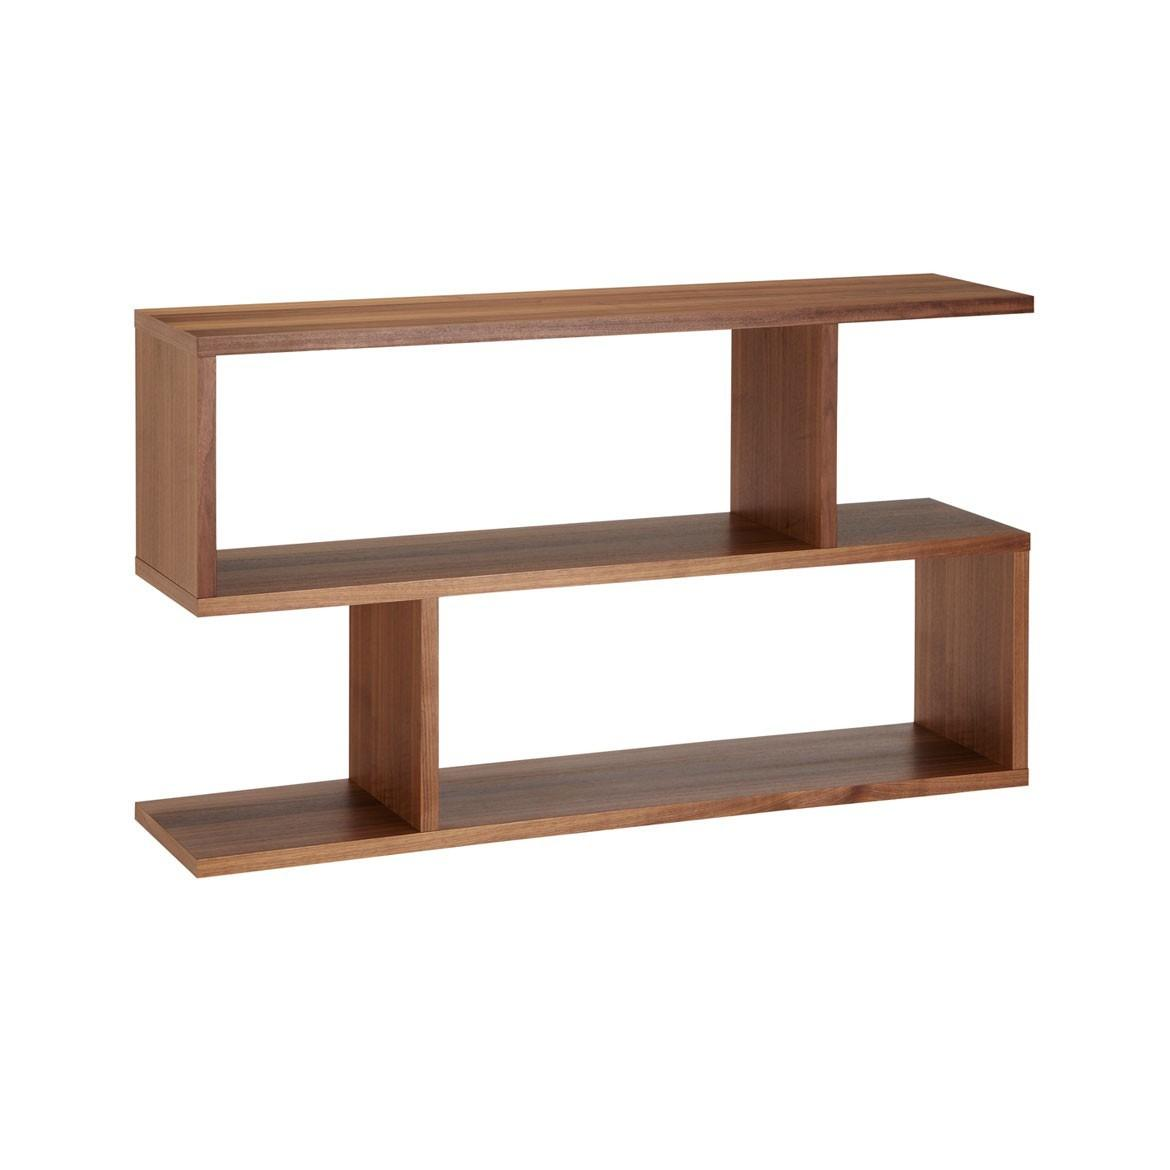 Modern Varnished Walnut Wood Display Book Shelves